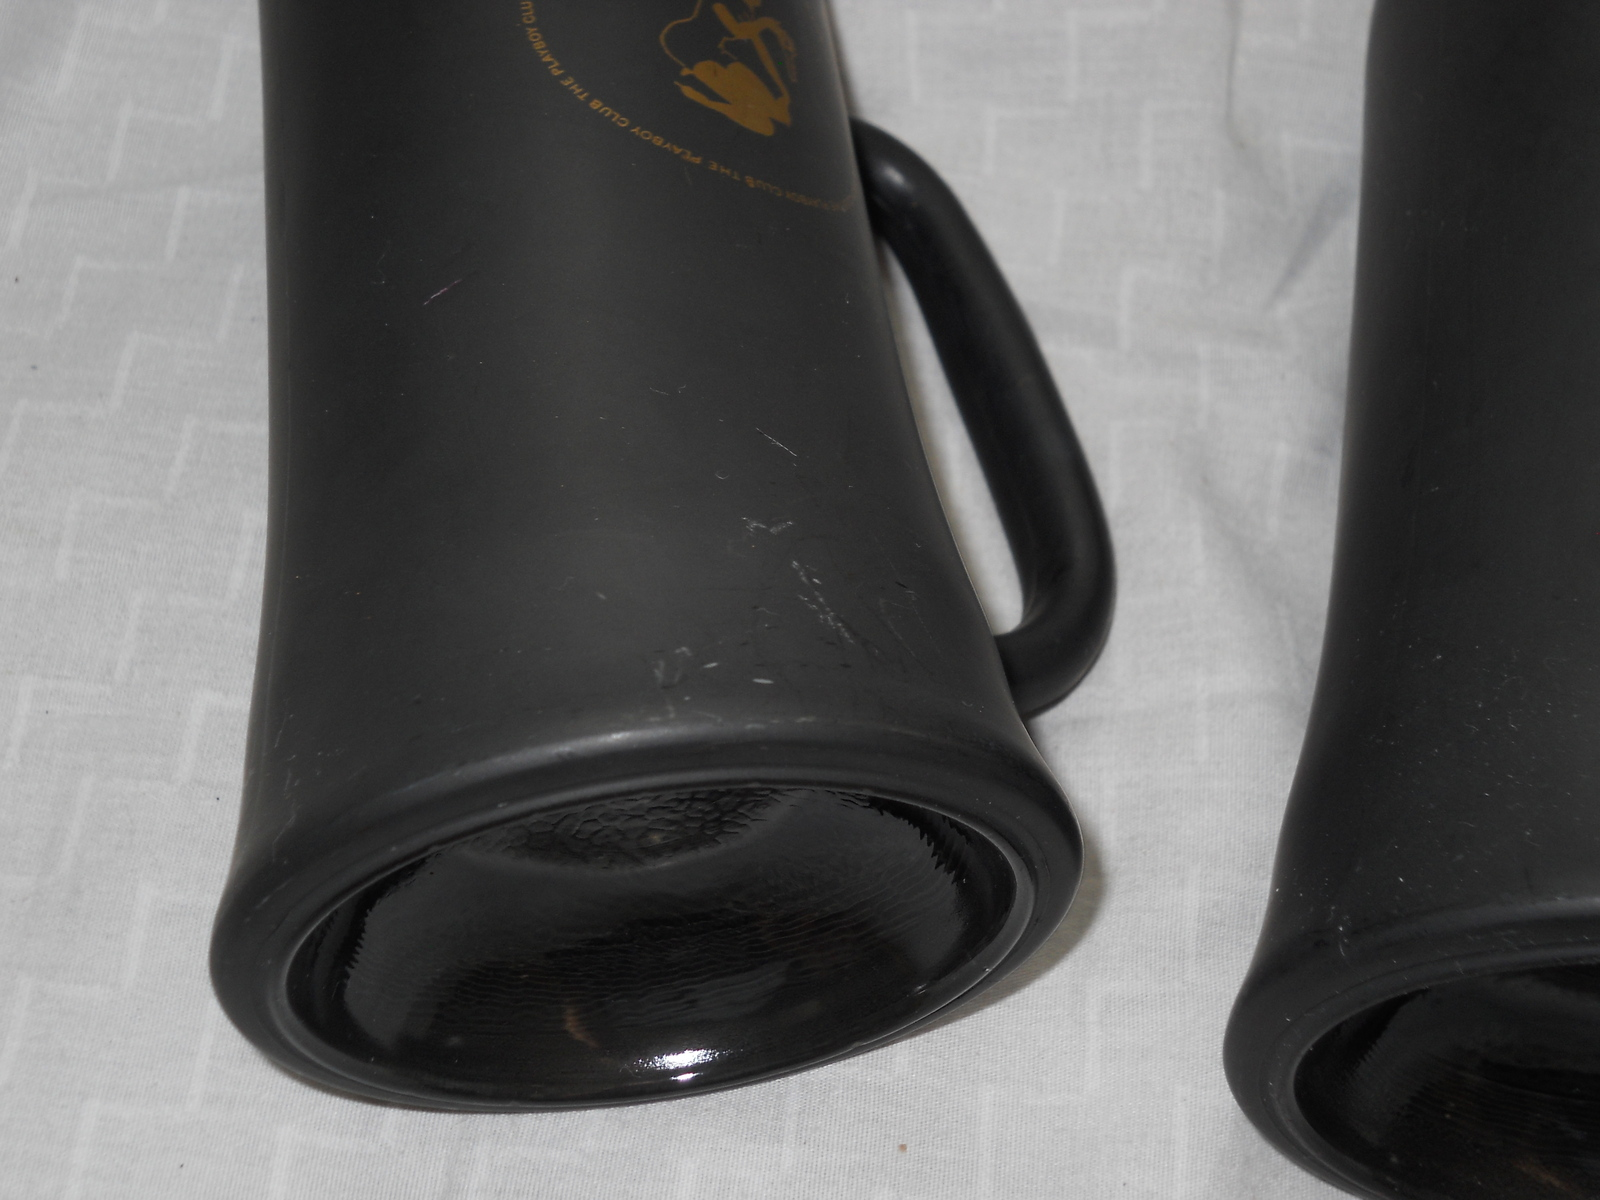 TWO PLAYBOY CLUB BLACK & GOLD FROSTY GLASS COFFEE MUGS, BEER STEIN CUP VTG 60's image 6